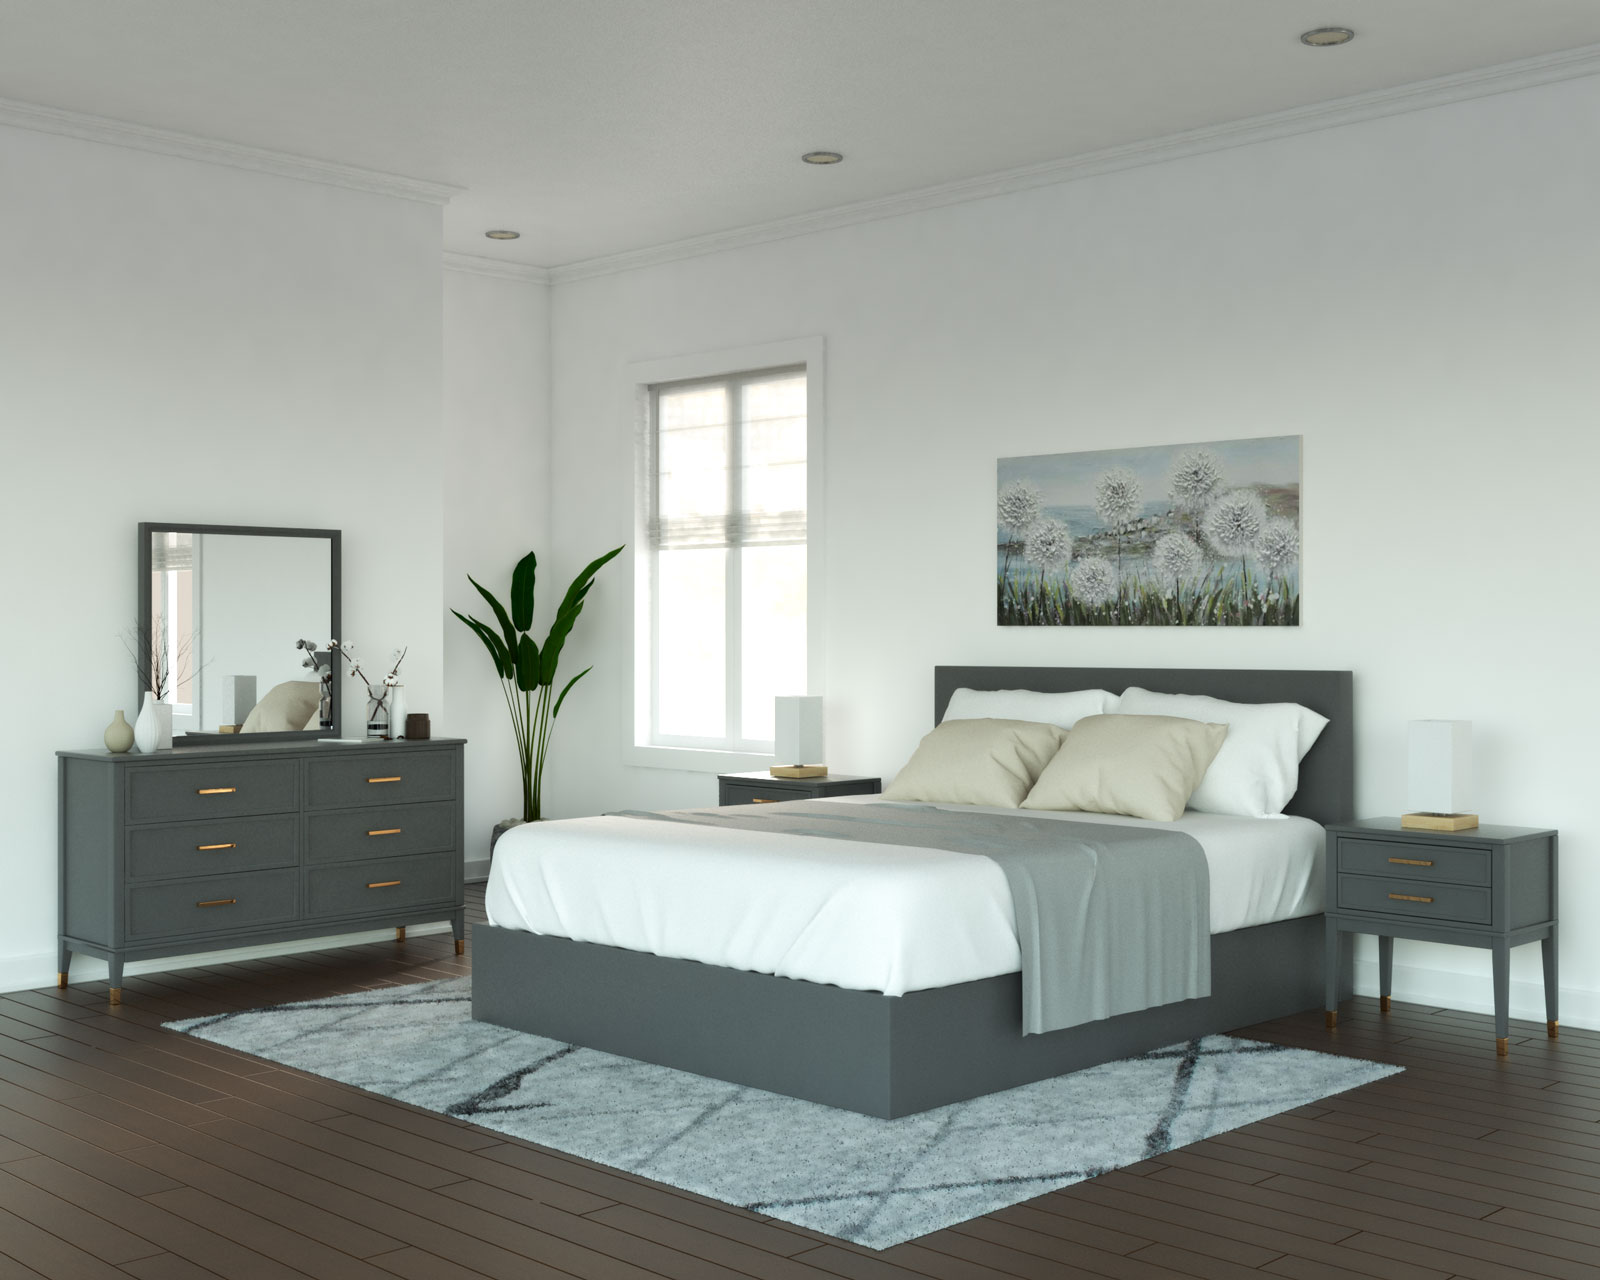 White walls with gray furniture